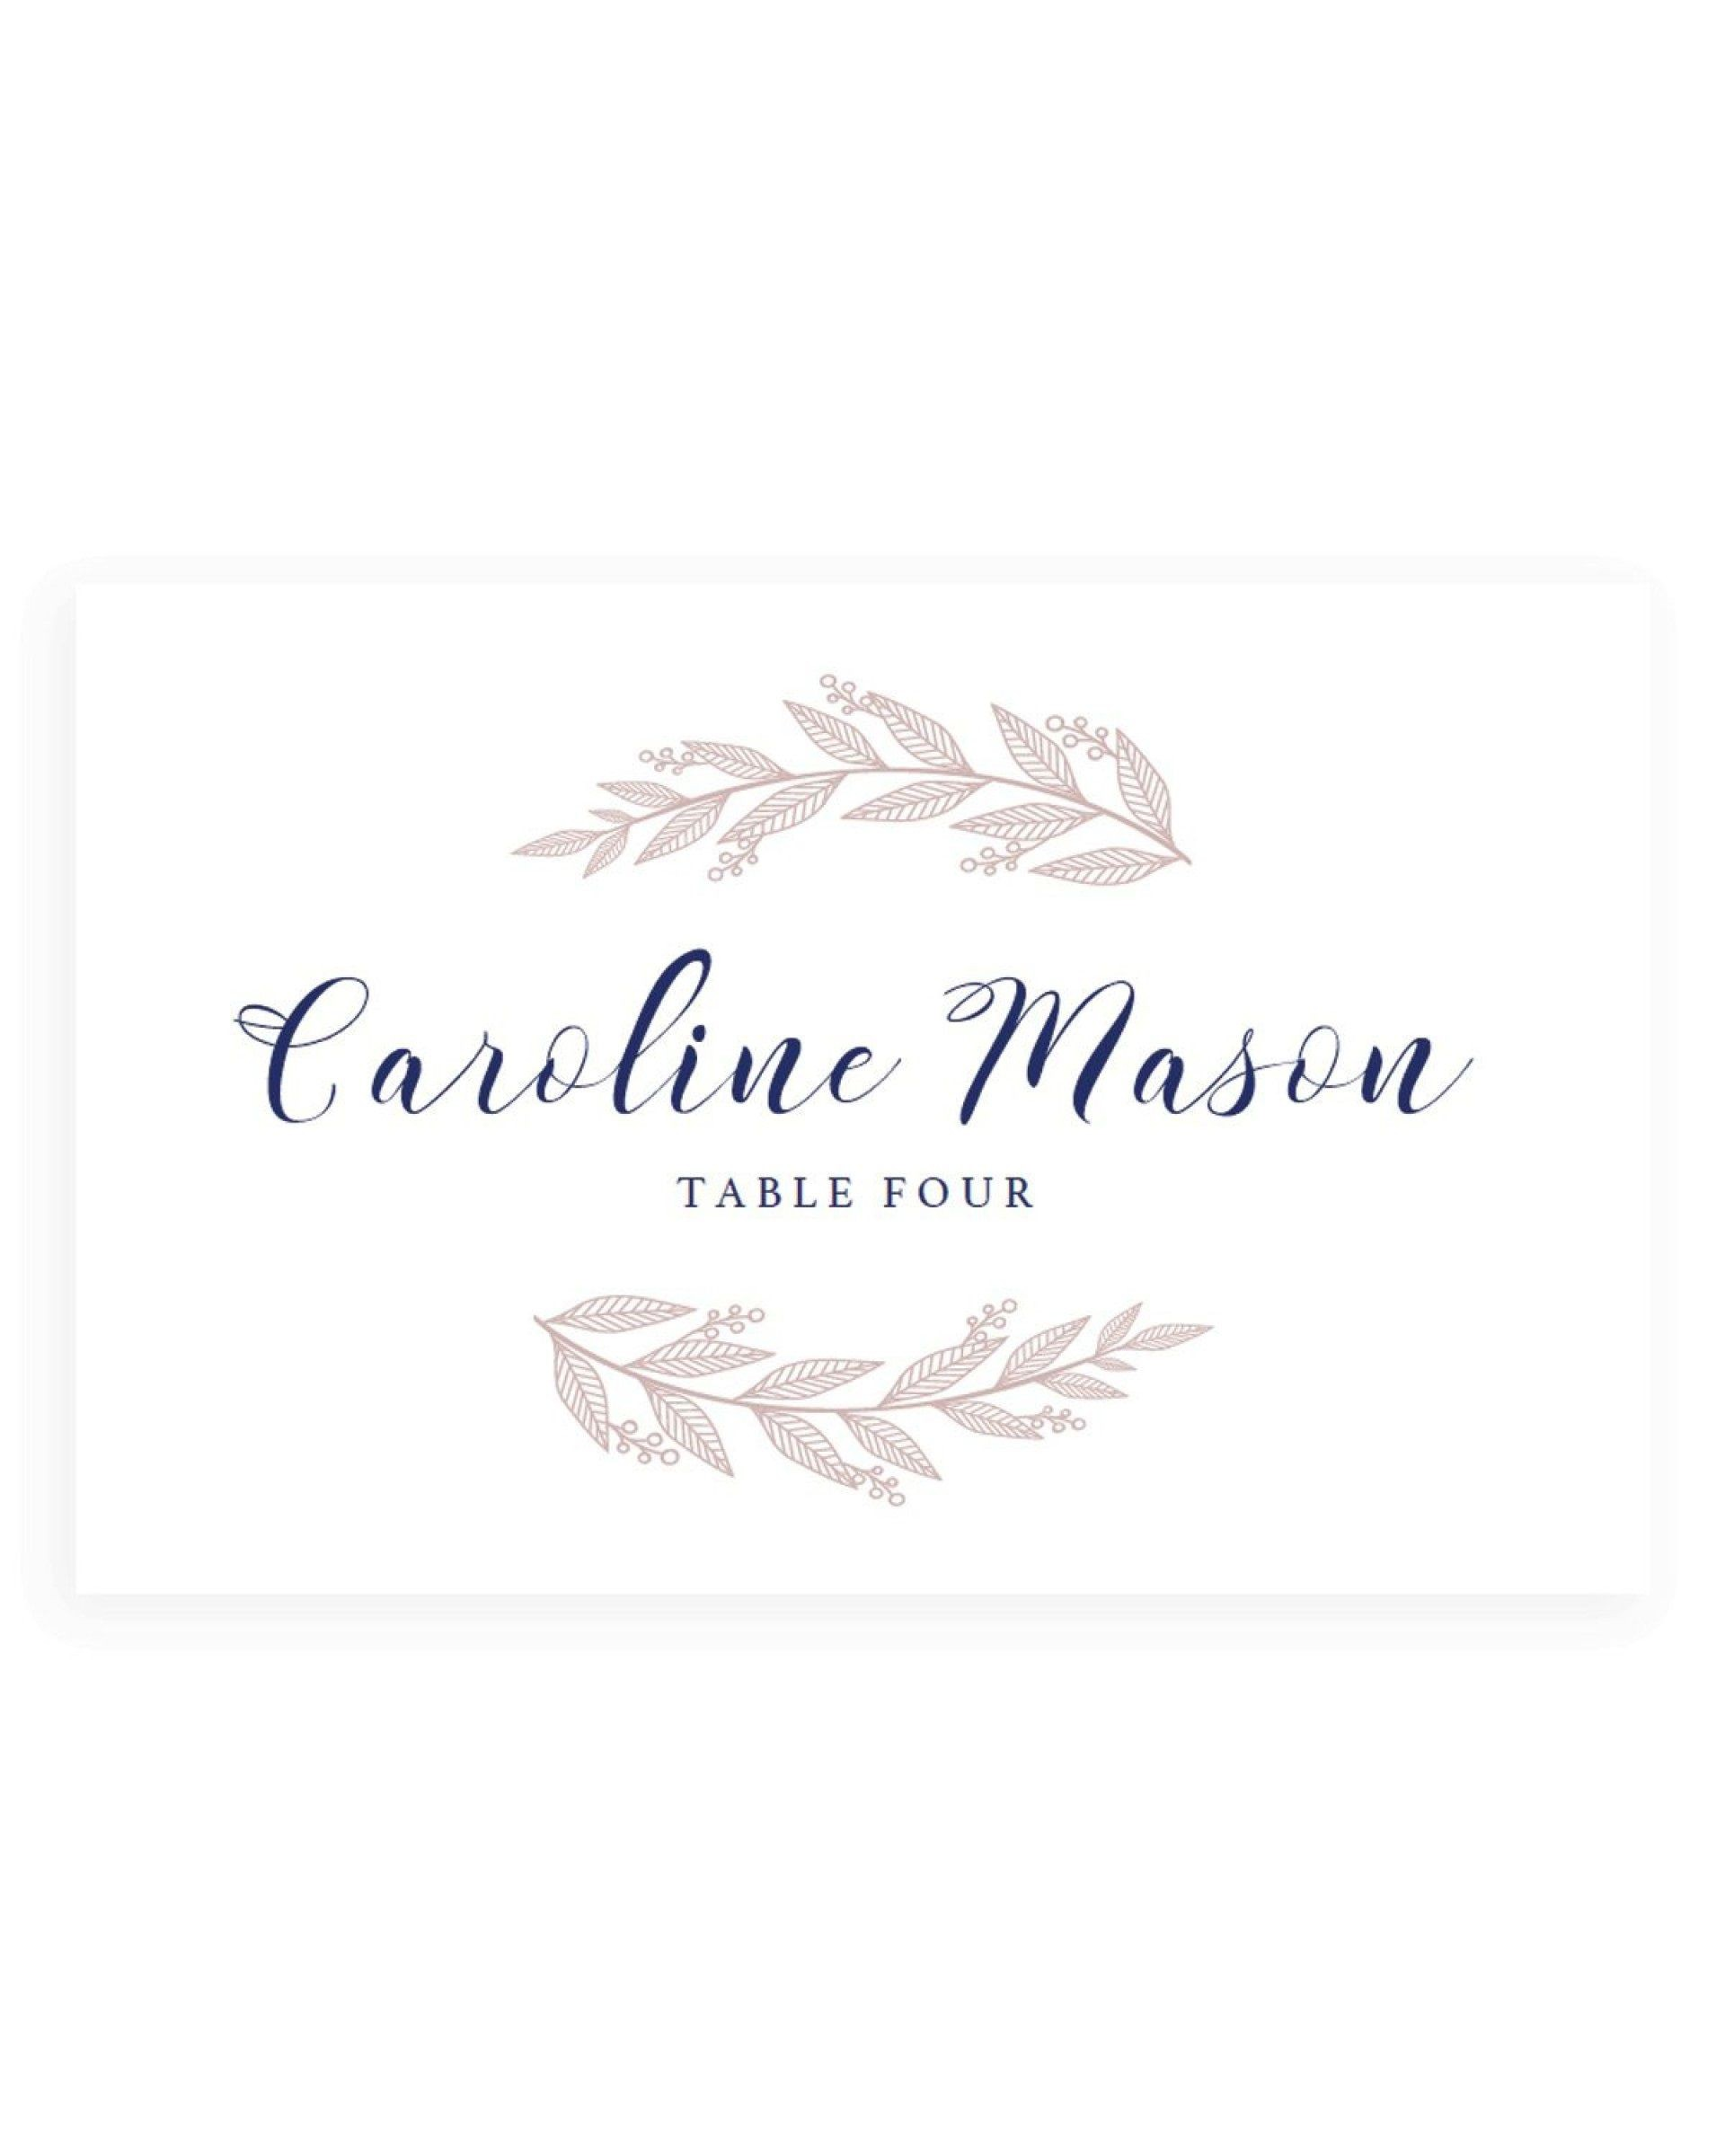 005 Formidable Name Place Card Template For Wedding Highest Clarity  Free Word1920